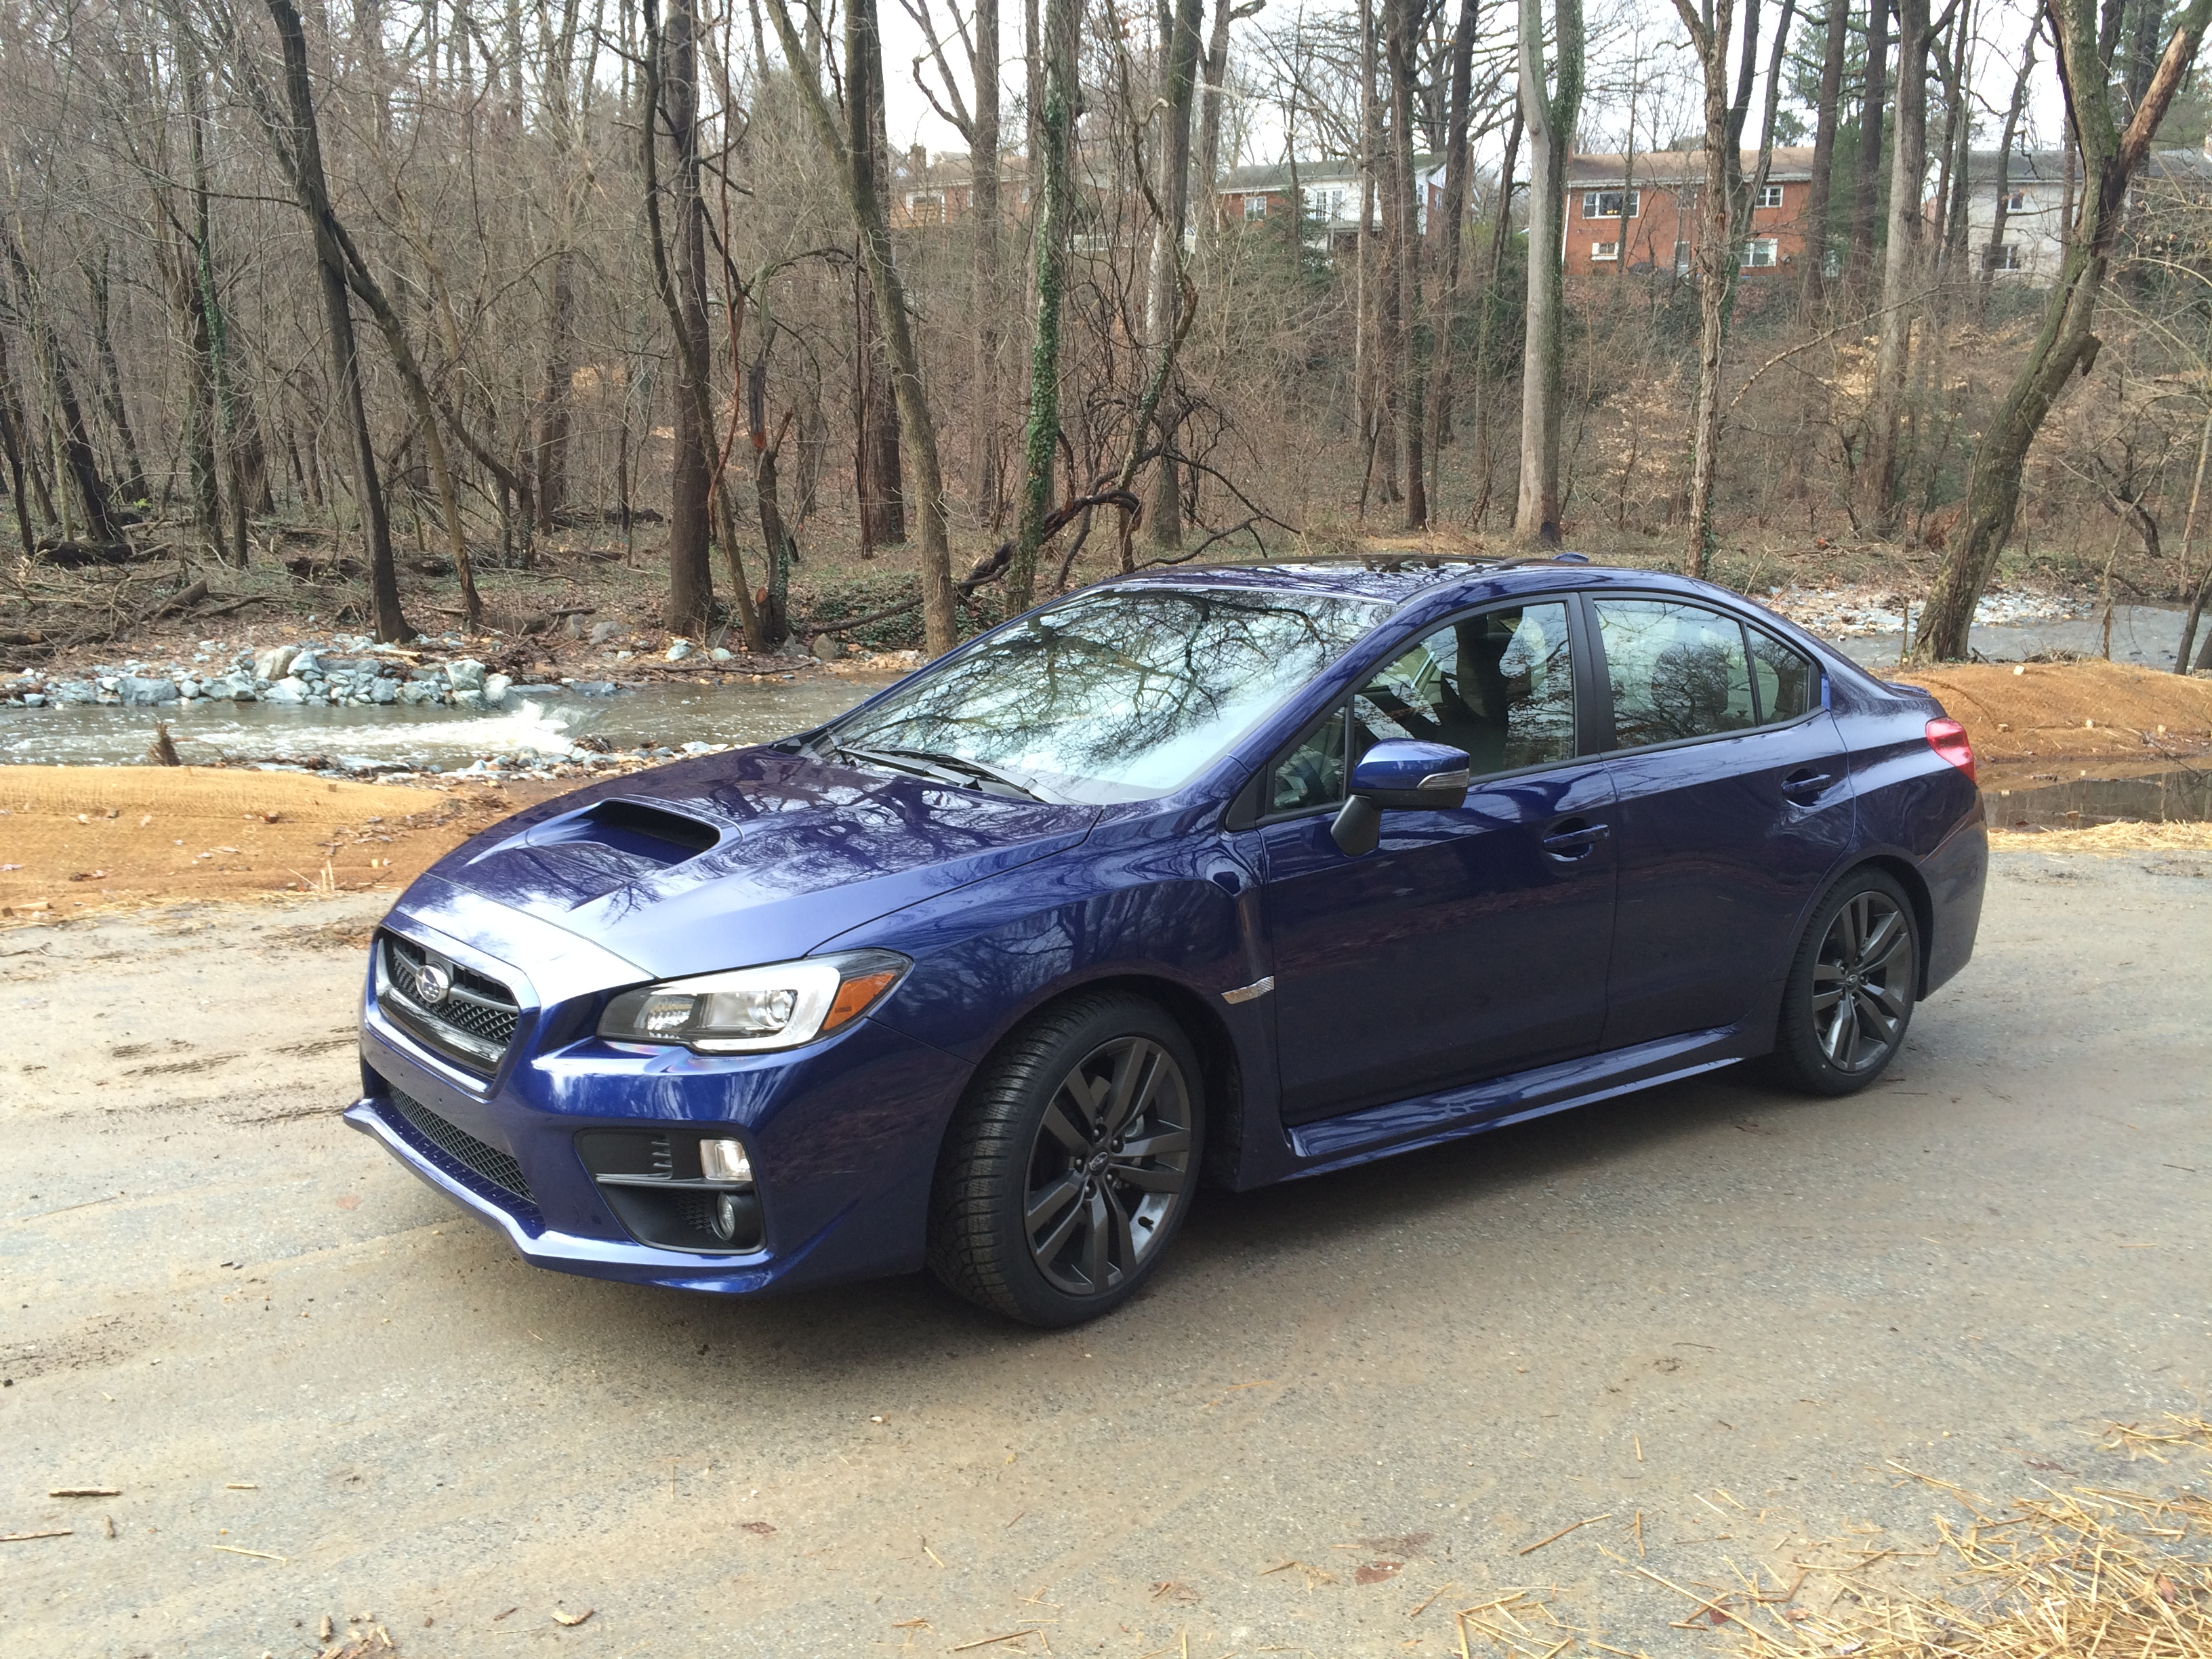 2016 Subaru WRX Limited open to new set of drivers